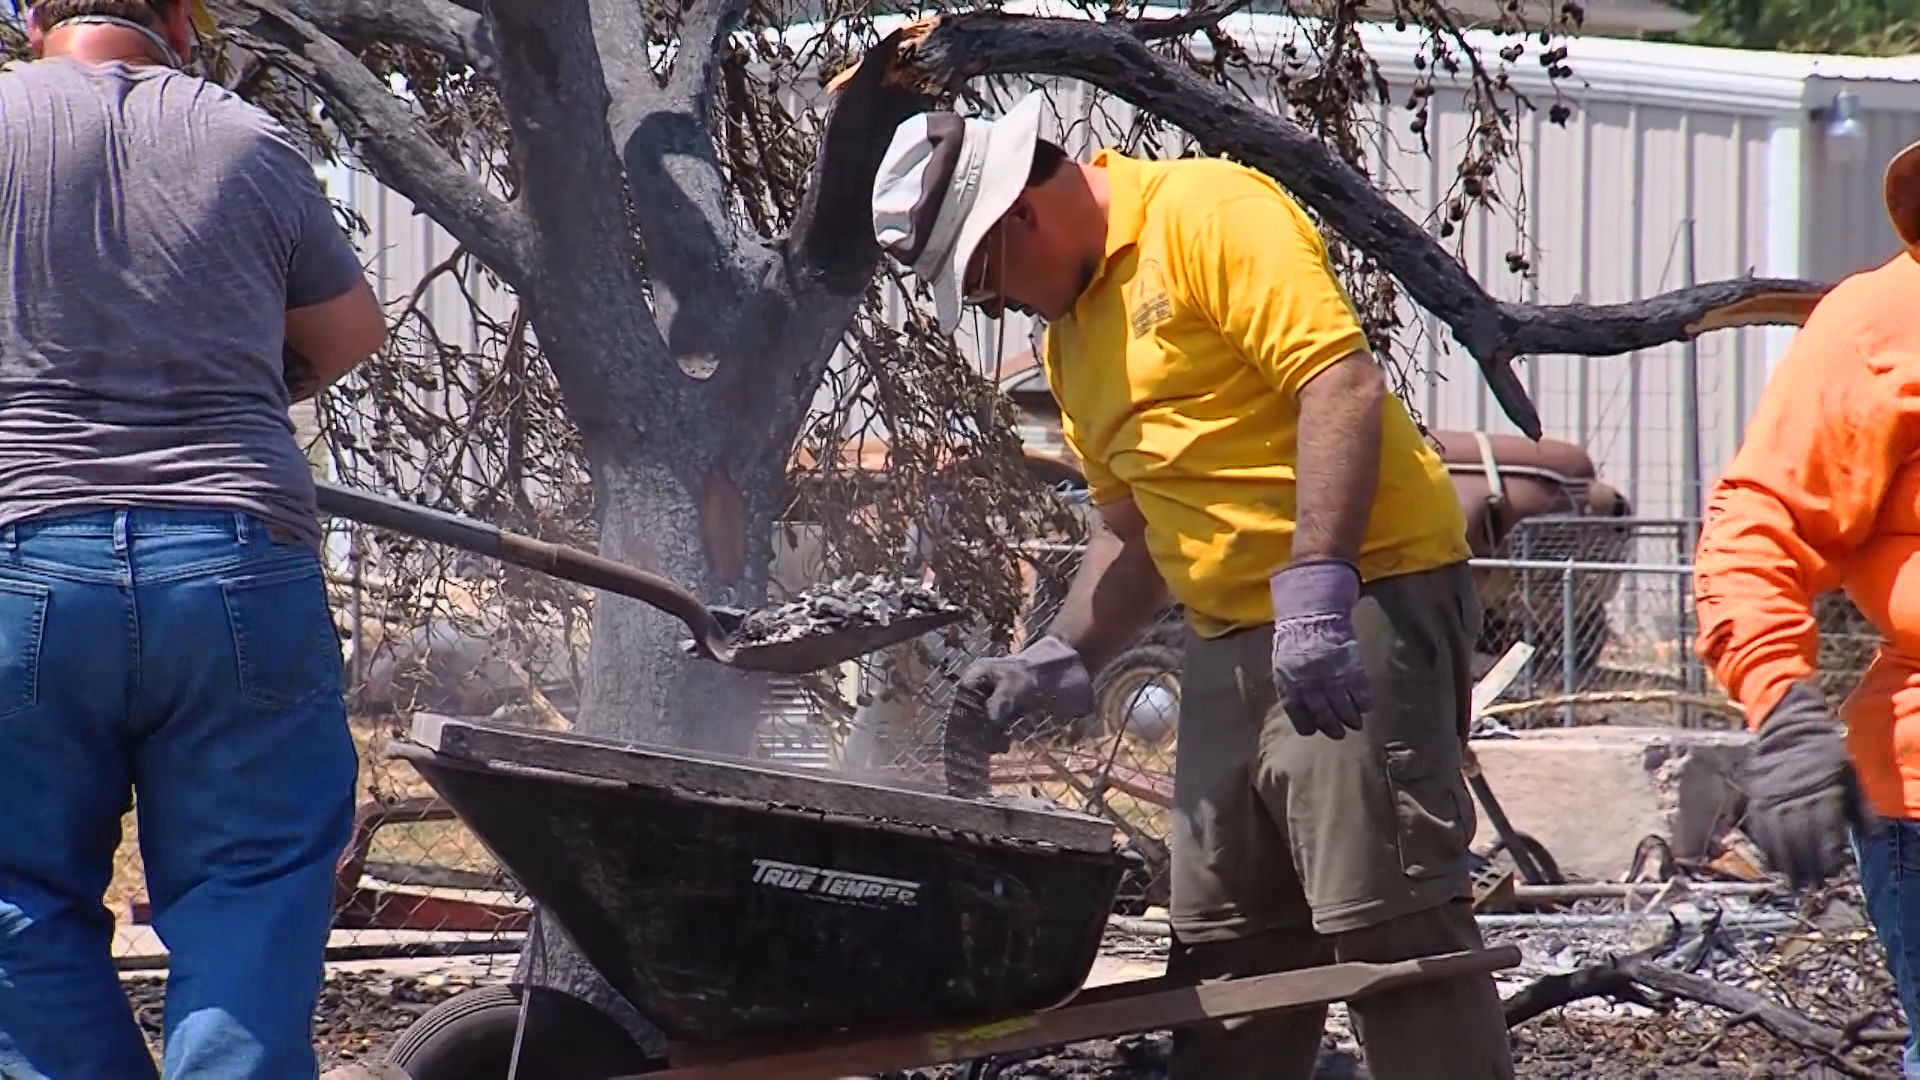 Volunteers help clean up Tooele fire victims' homes: 'They've lost hope'